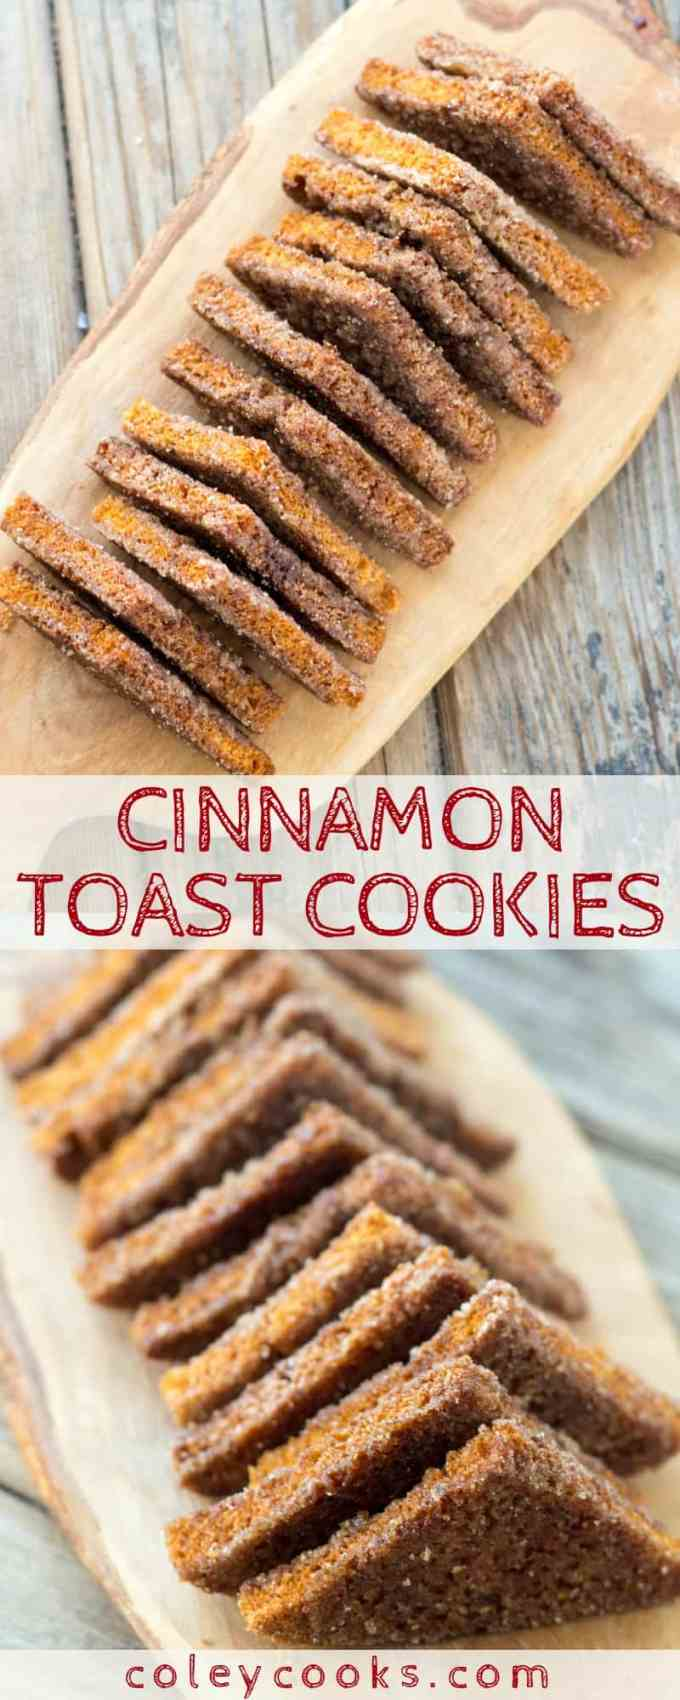 These unusual cookies are super buttery and sweetened with cinnamon sugar. They taste like the best cinnamon toast from your childhood. Must make!